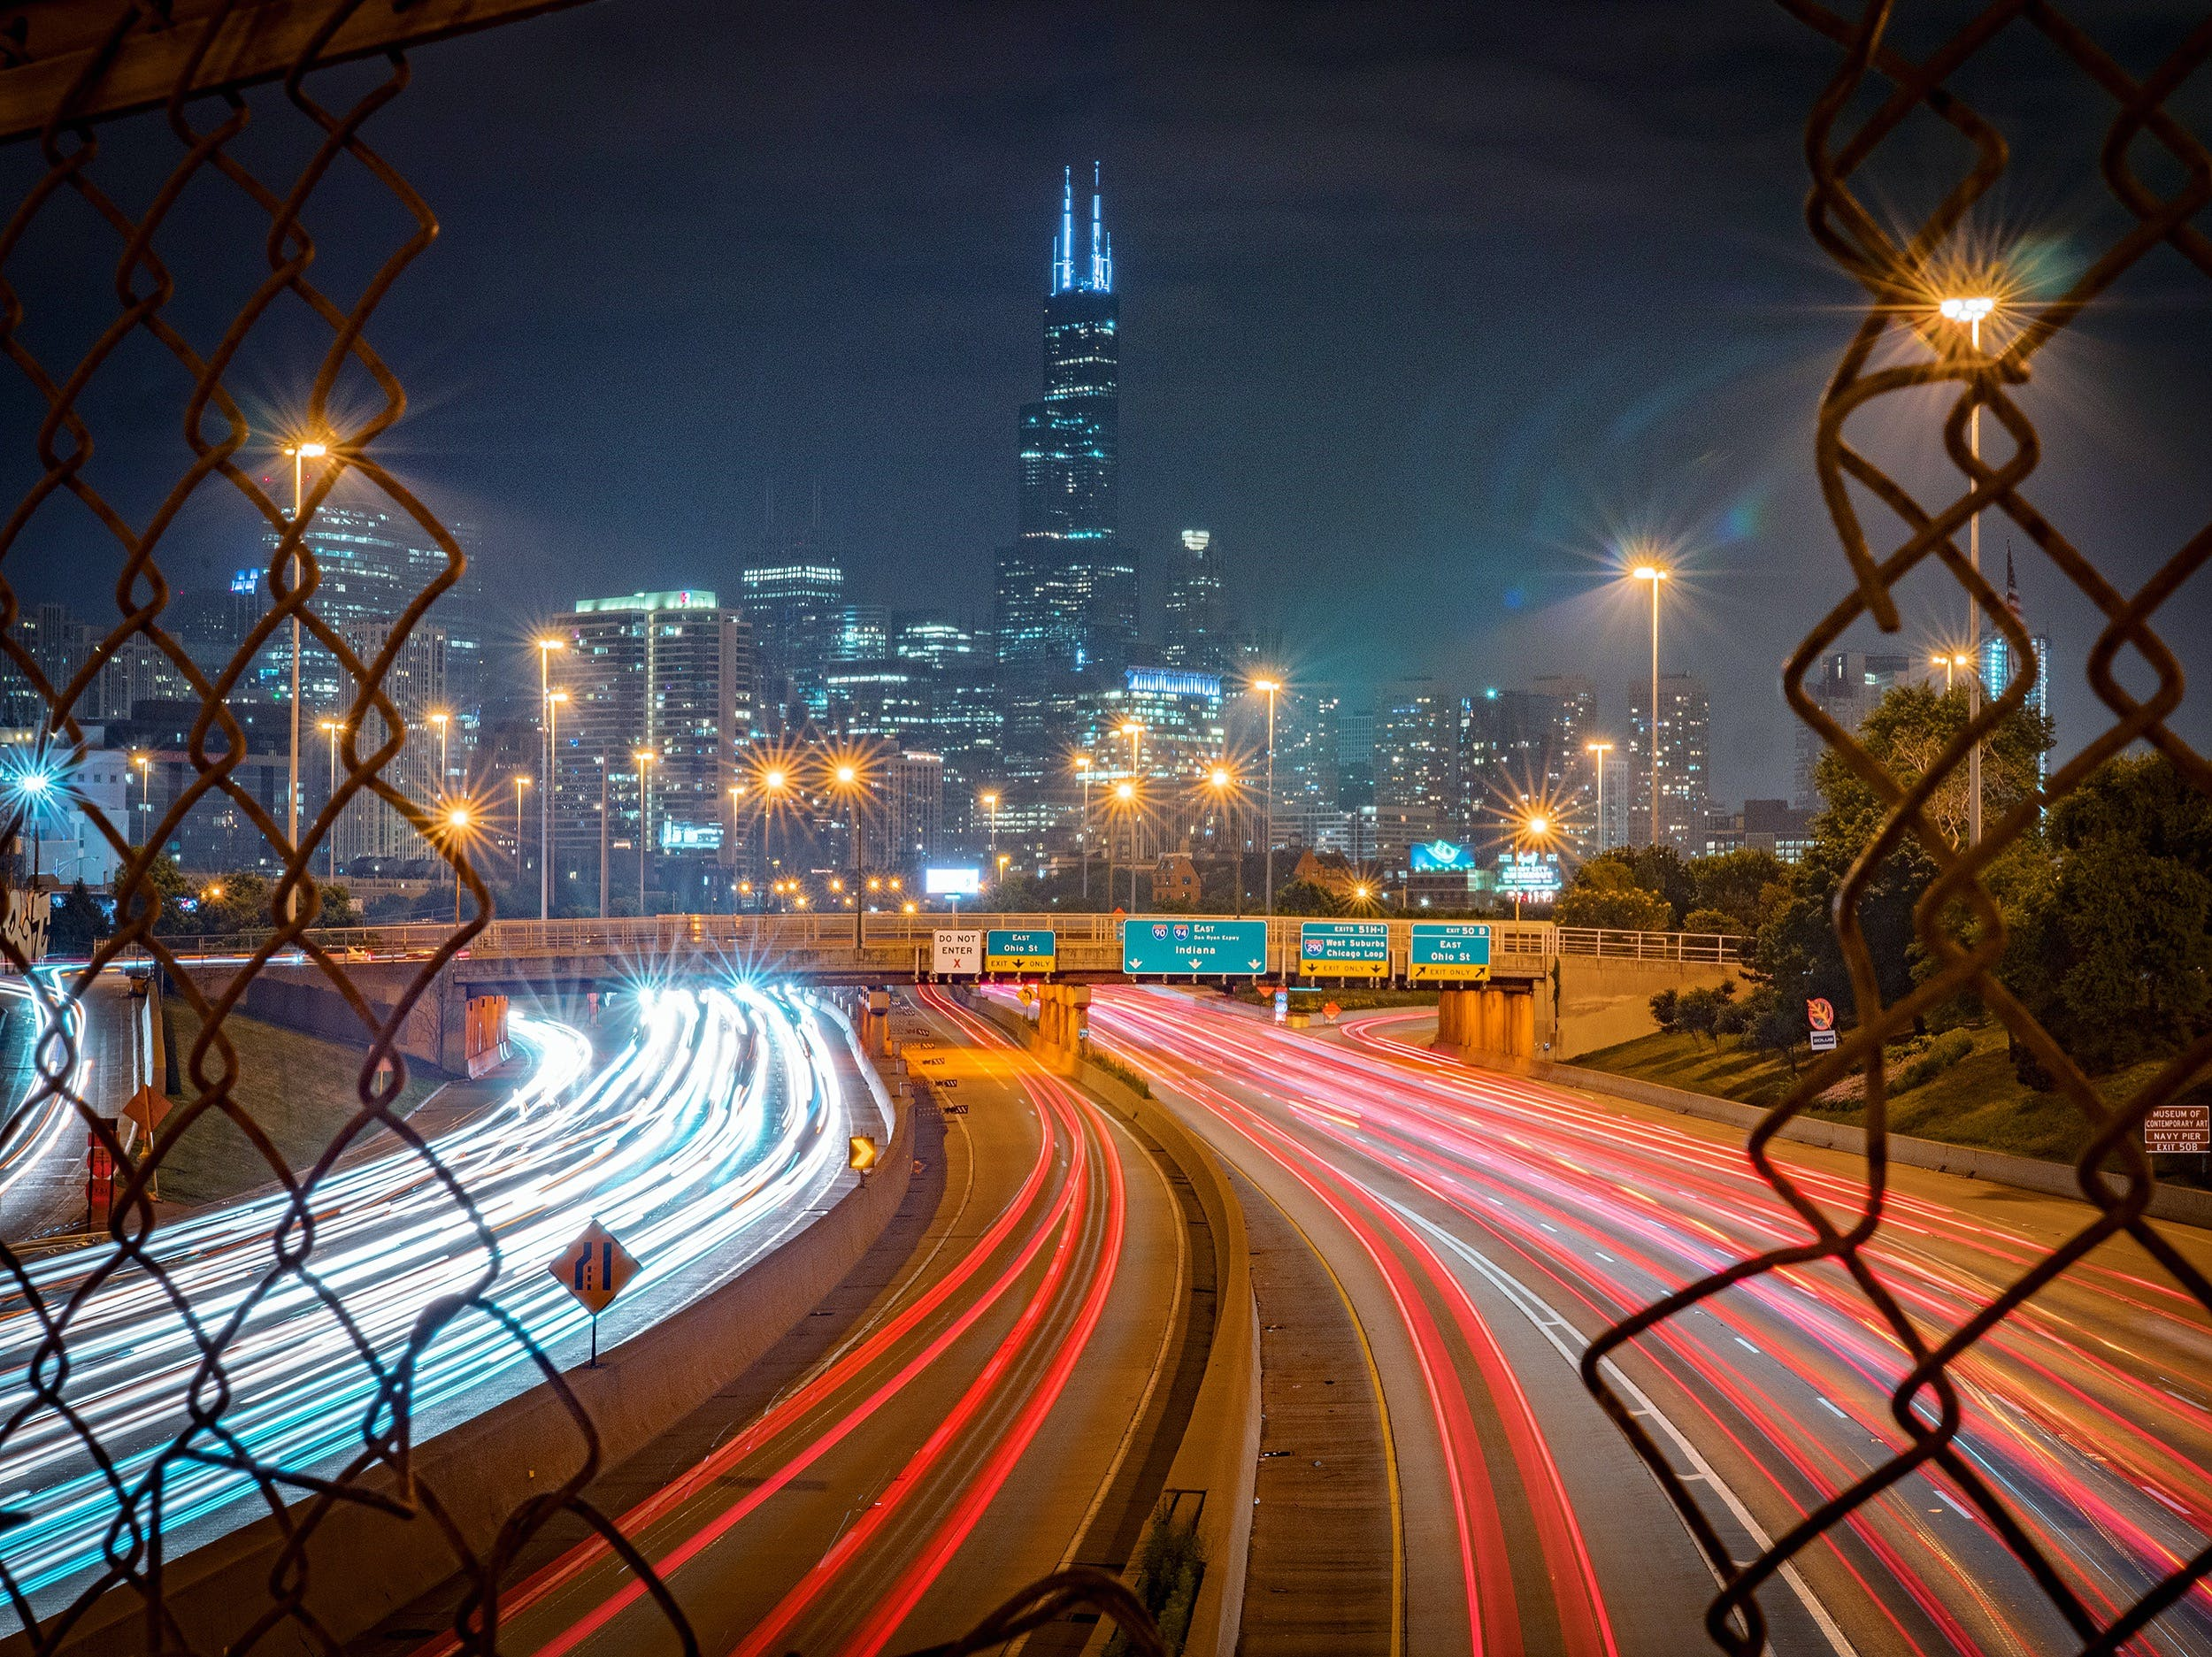 Time Lapse Photography Of Vehicles Passing On Road At Night